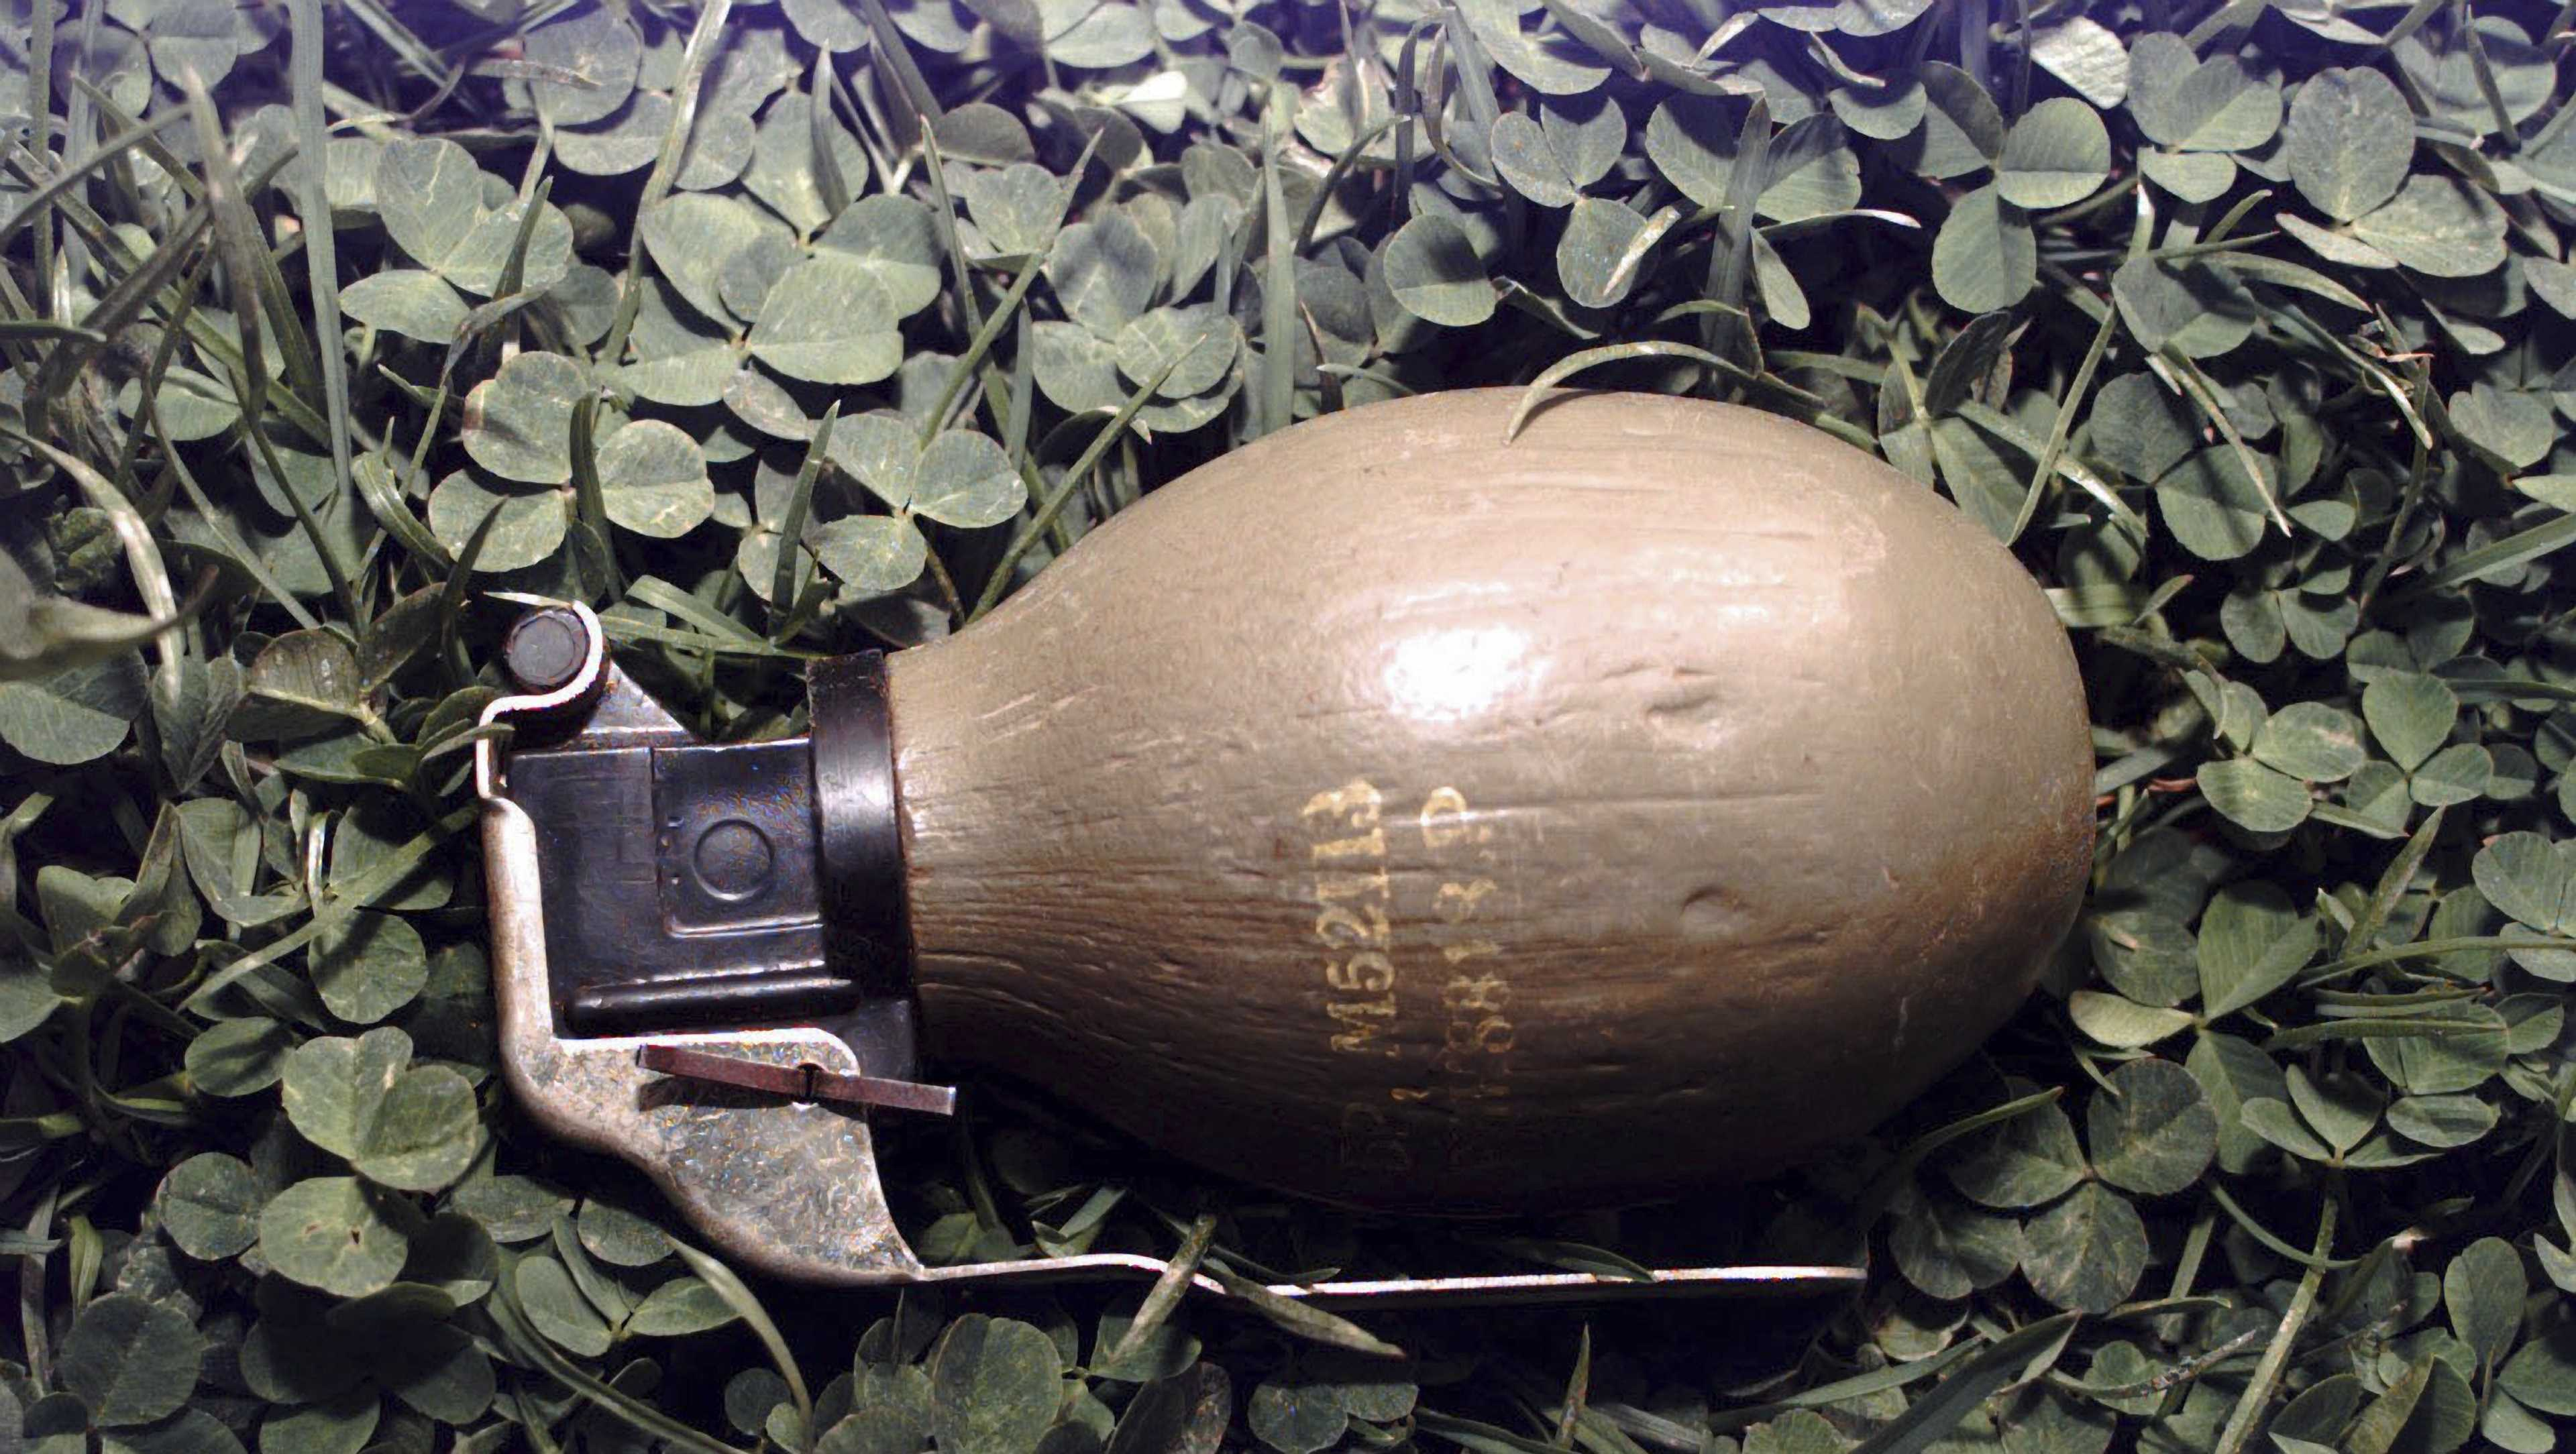 This file image shows a close-up view of a M69 anti-personnel hand grenade.